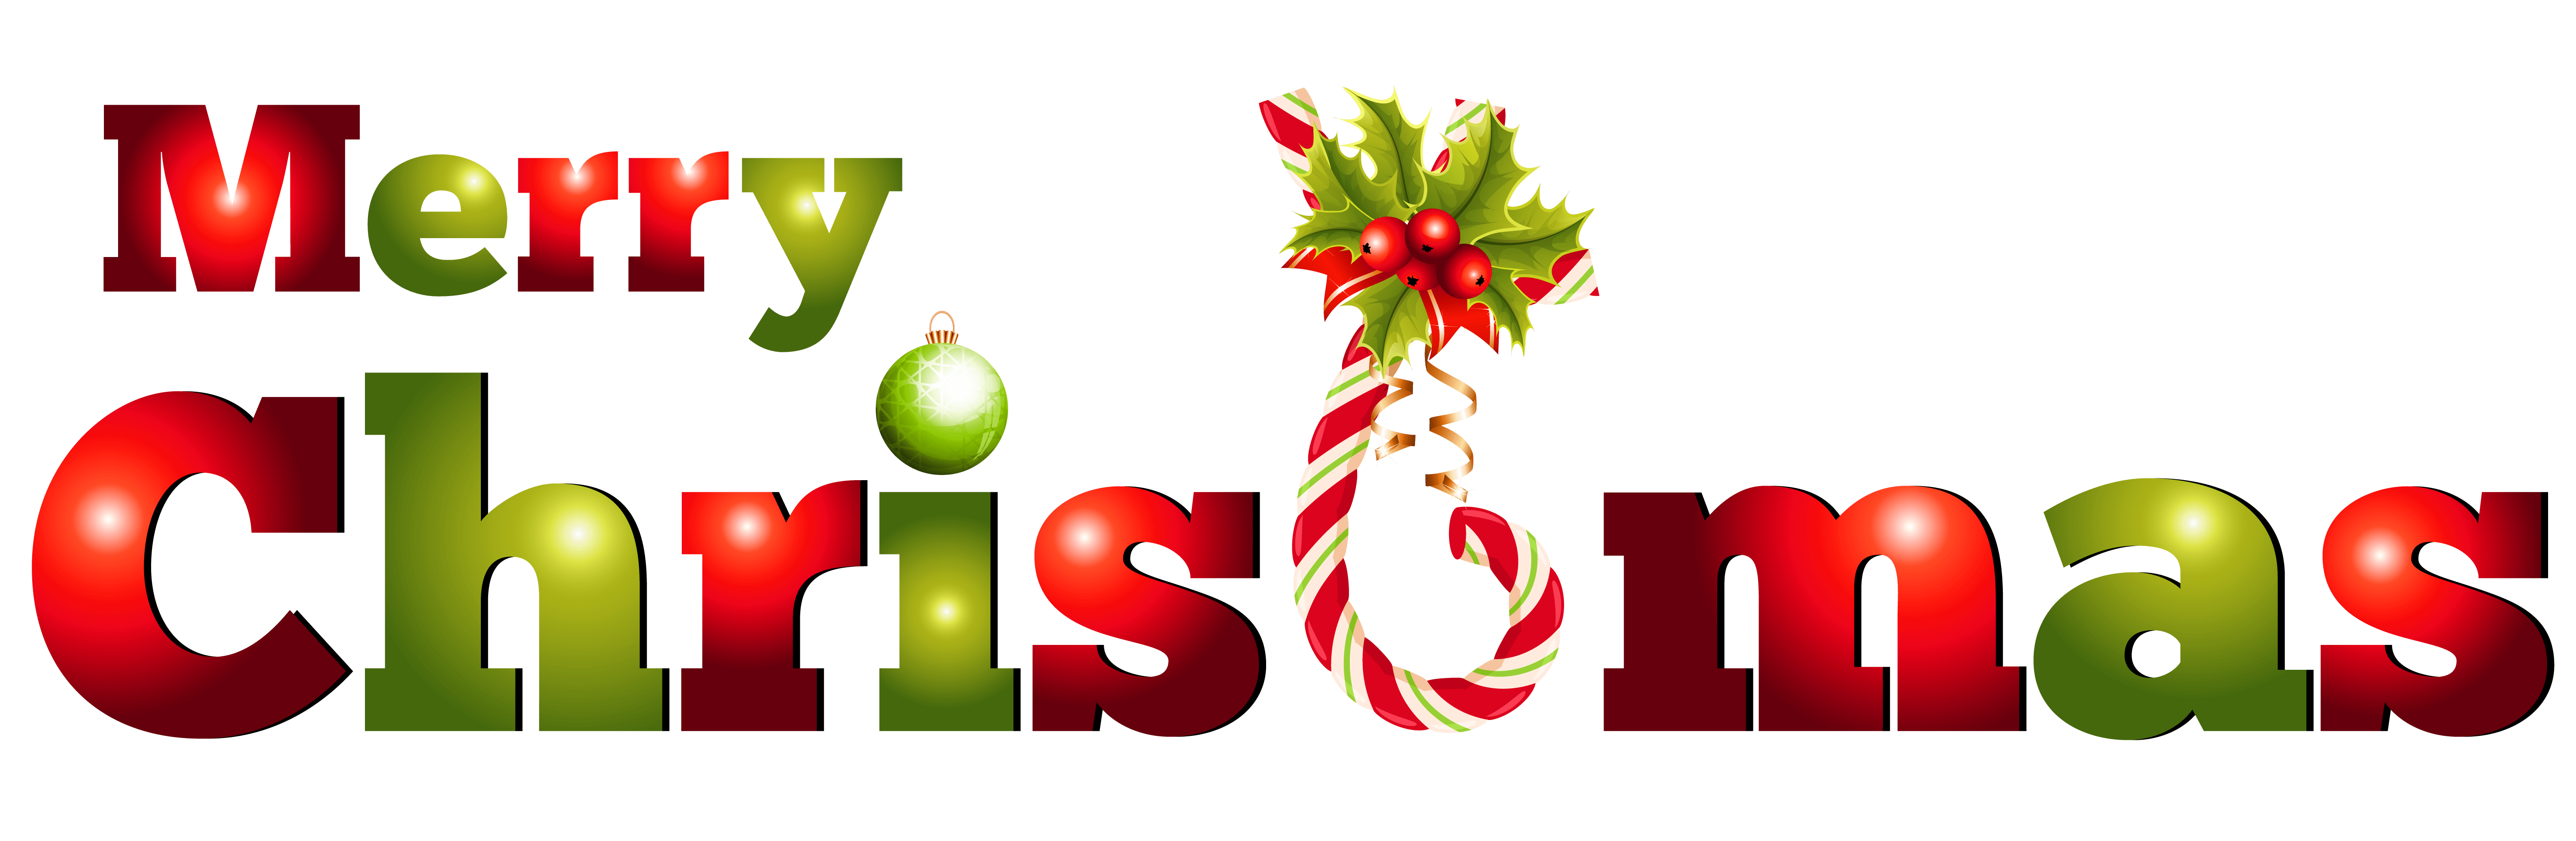 Merry Christmas Dulce Texto PNG transparente - StickPNG